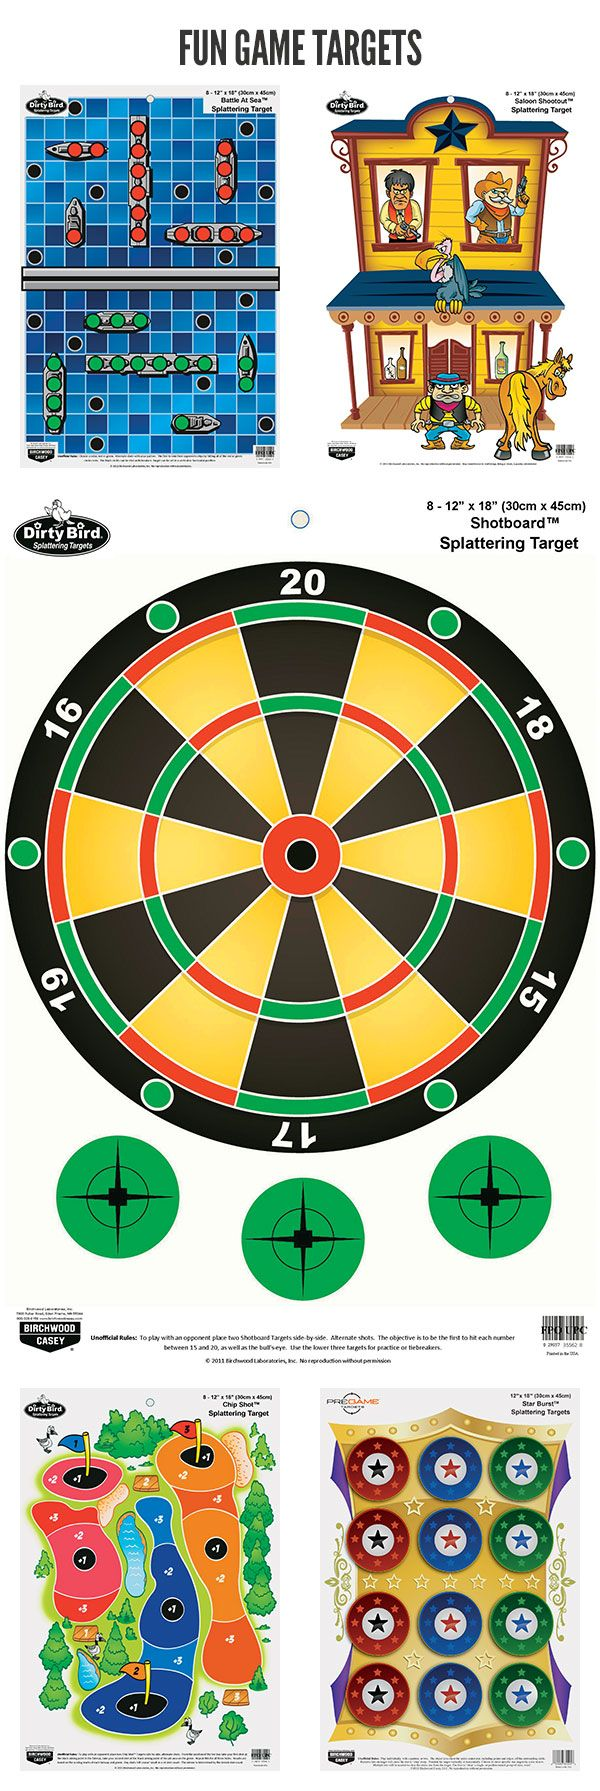 Get the kids target practicing with these fun, family-friendly targets!